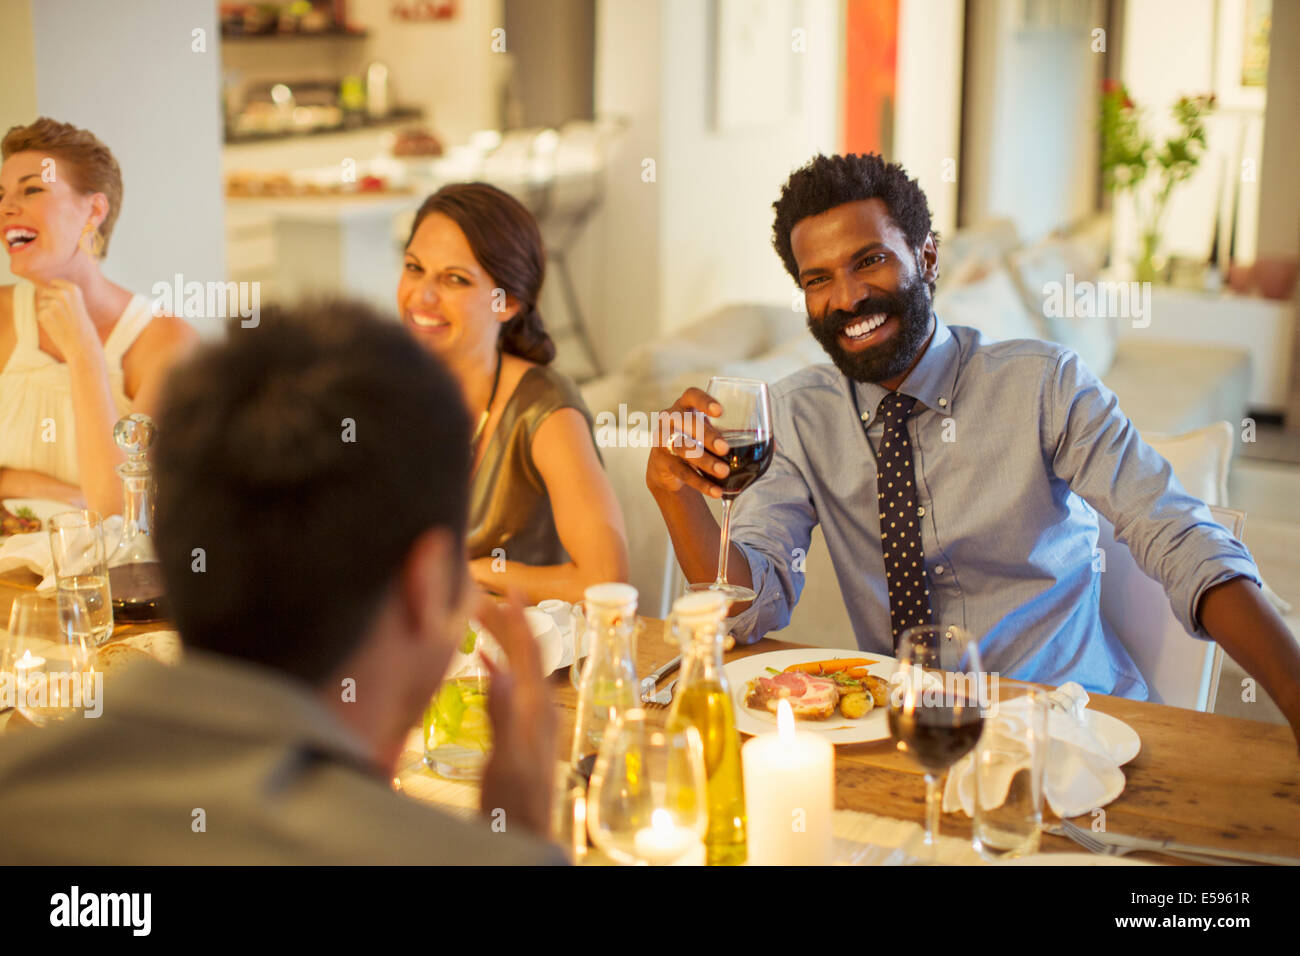 Amis parler at dinner party Photo Stock